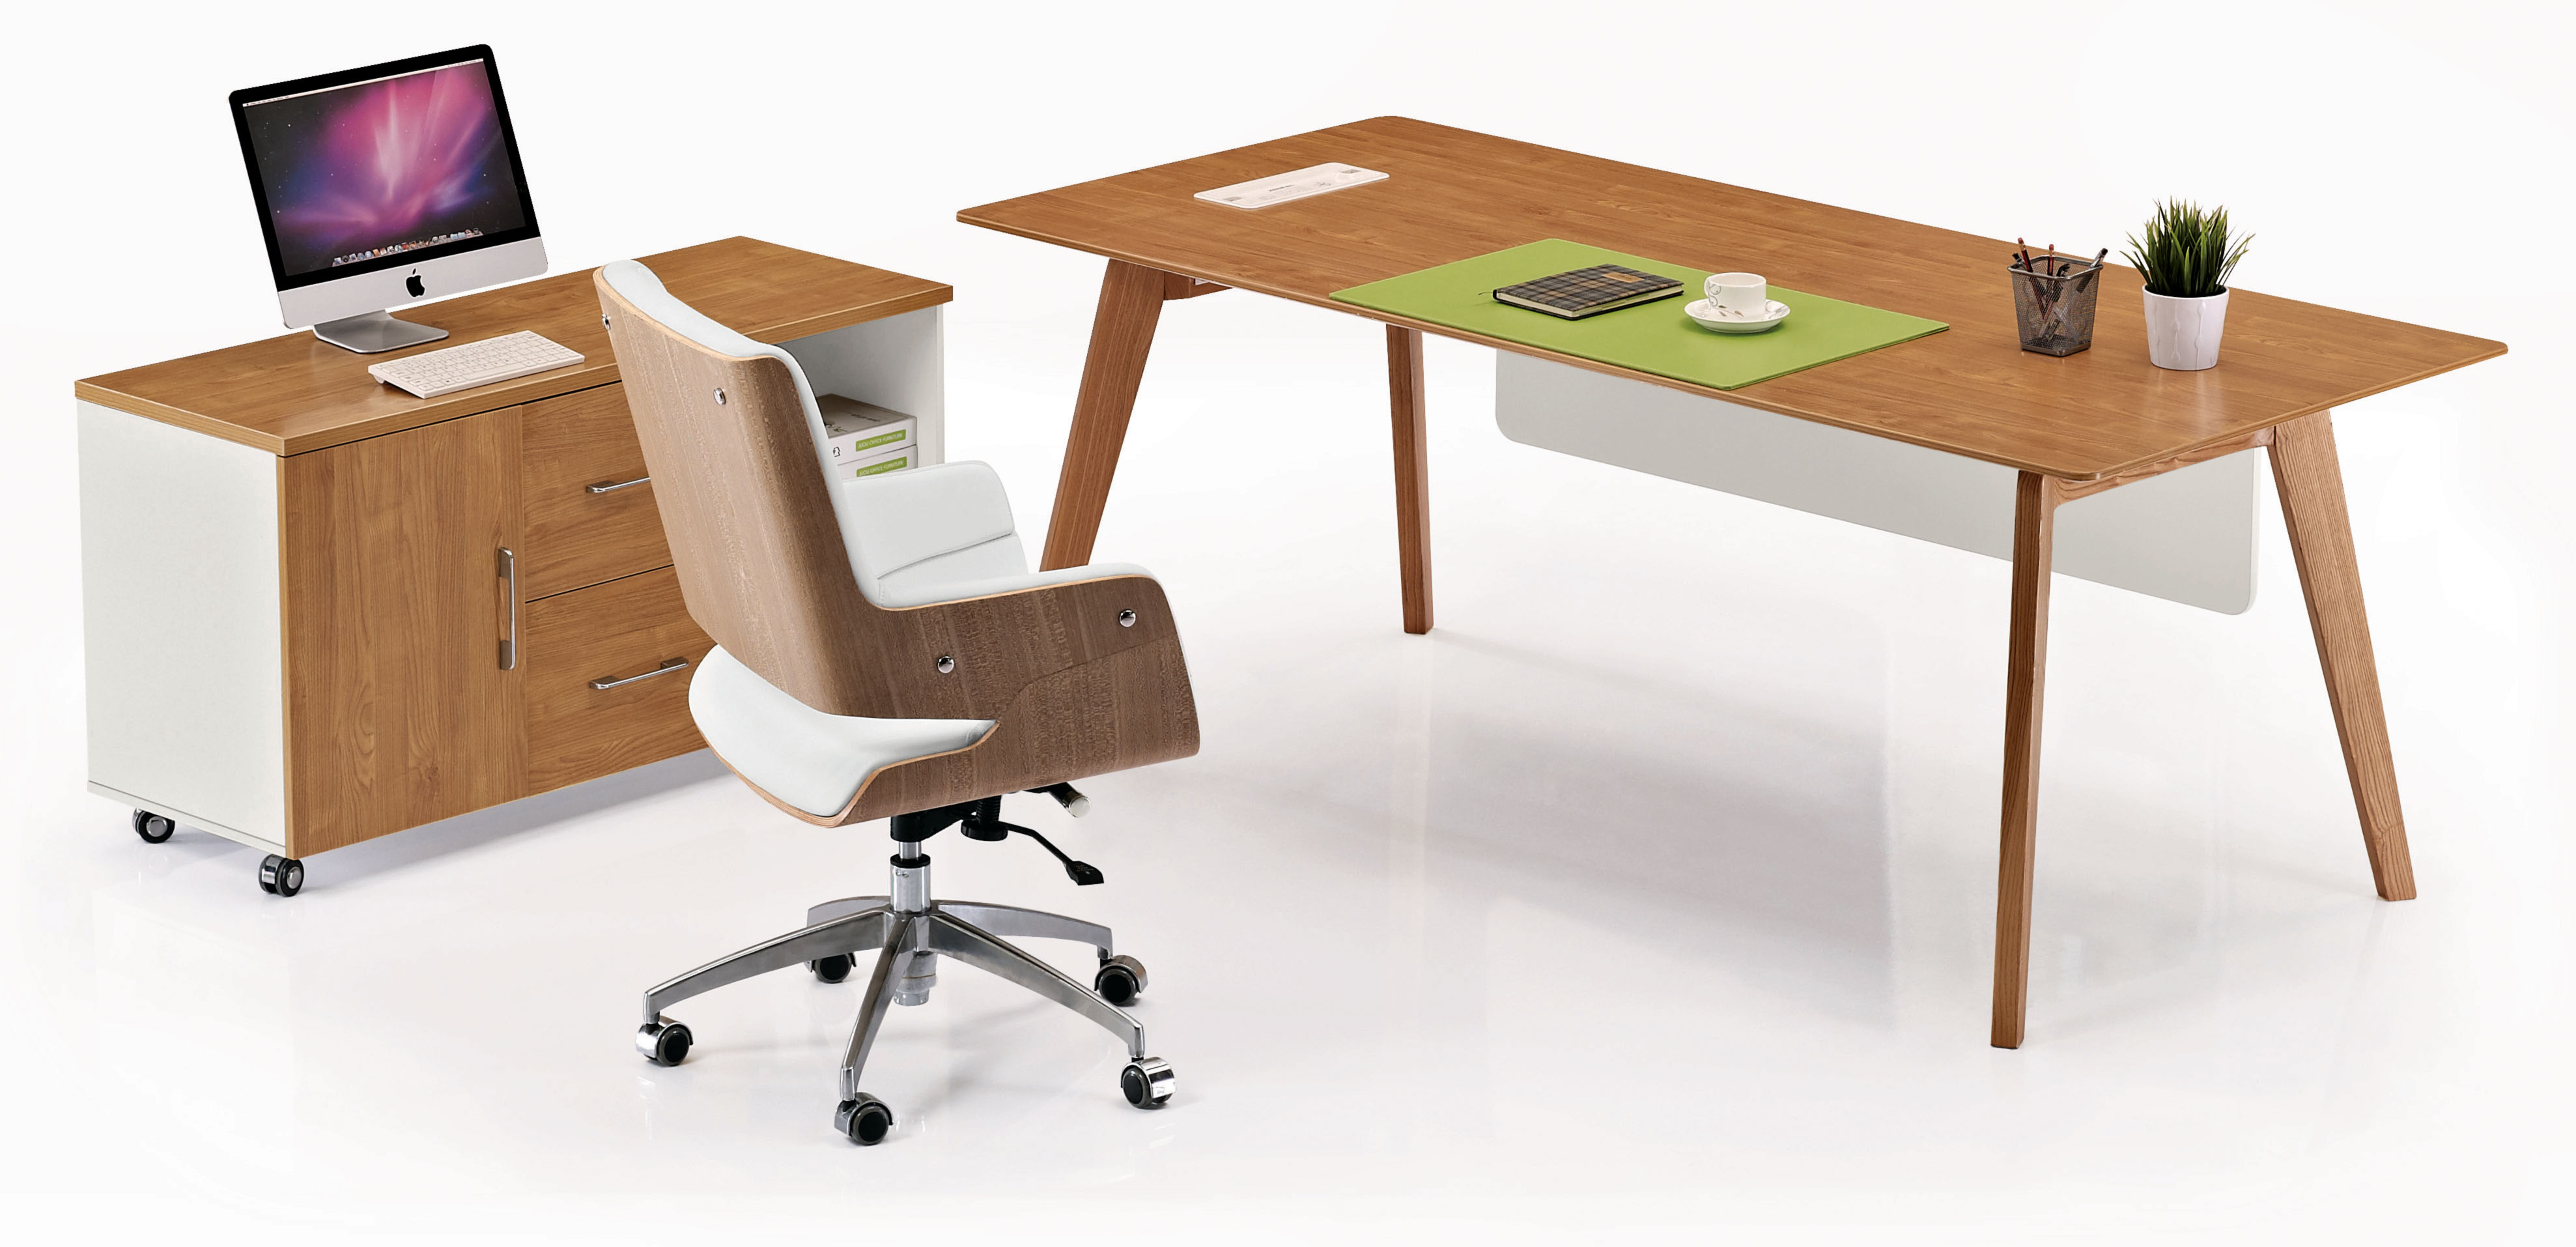 MDF limited warranty 5 years scratch resistant SGS office desk